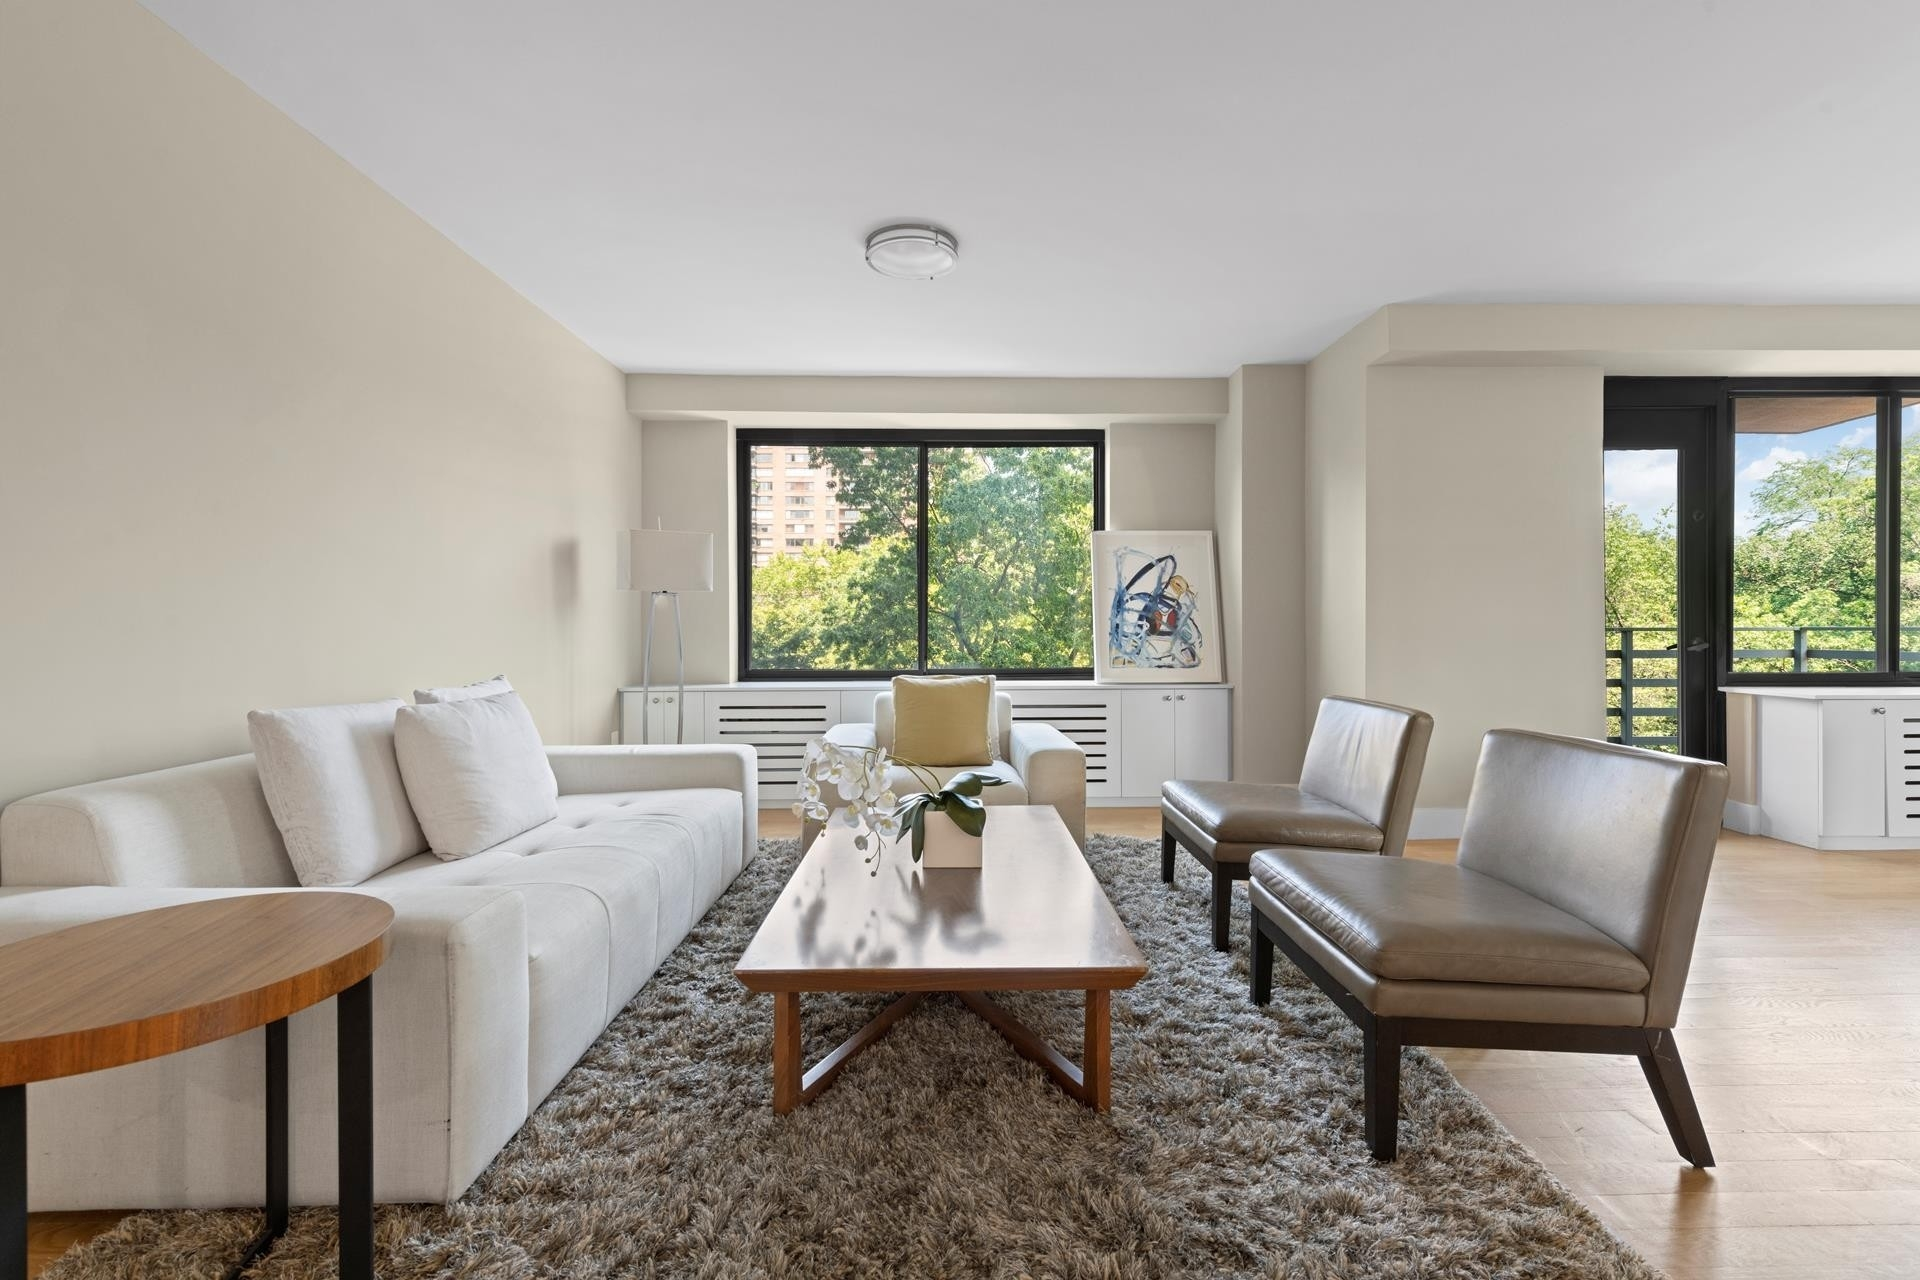 17. Condominiums for Sale at Vaux, The (Park Wes, 372 CENTRAL PARK W, 5BC Manhattan Valley, New York, NY 10025